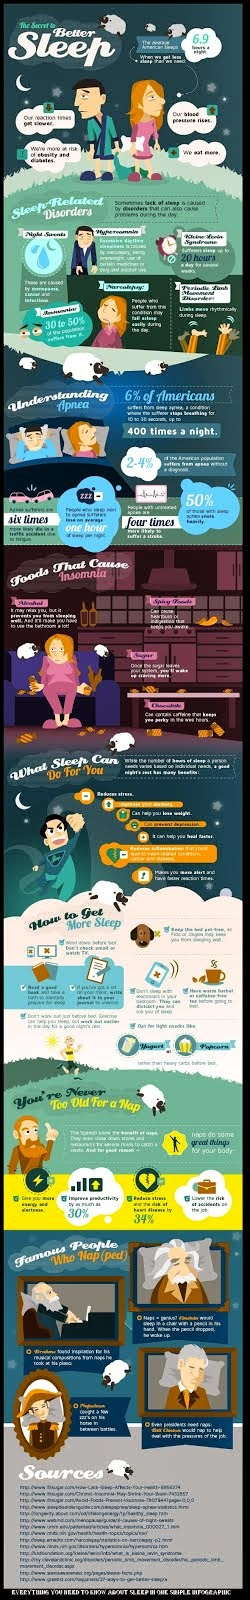 a2451a8e783e3a cute jewelry The South Down South danskins now womens sneakers on sale  Everything You Need to Know About Sleep in One Simple Infographic